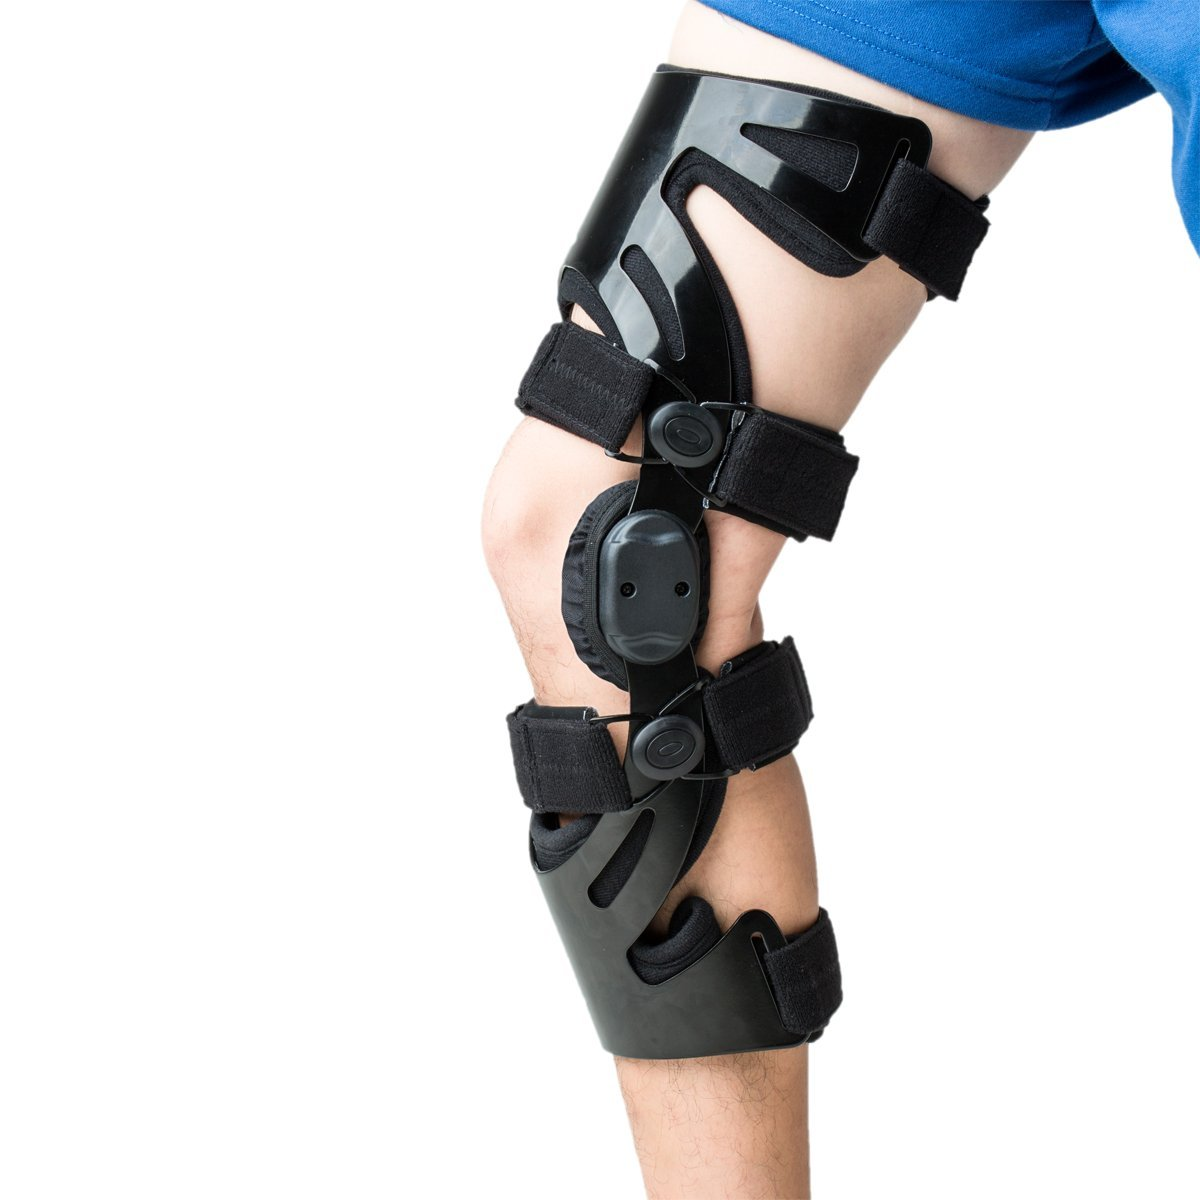 Orthomen Functional Knee Brace Adjustable